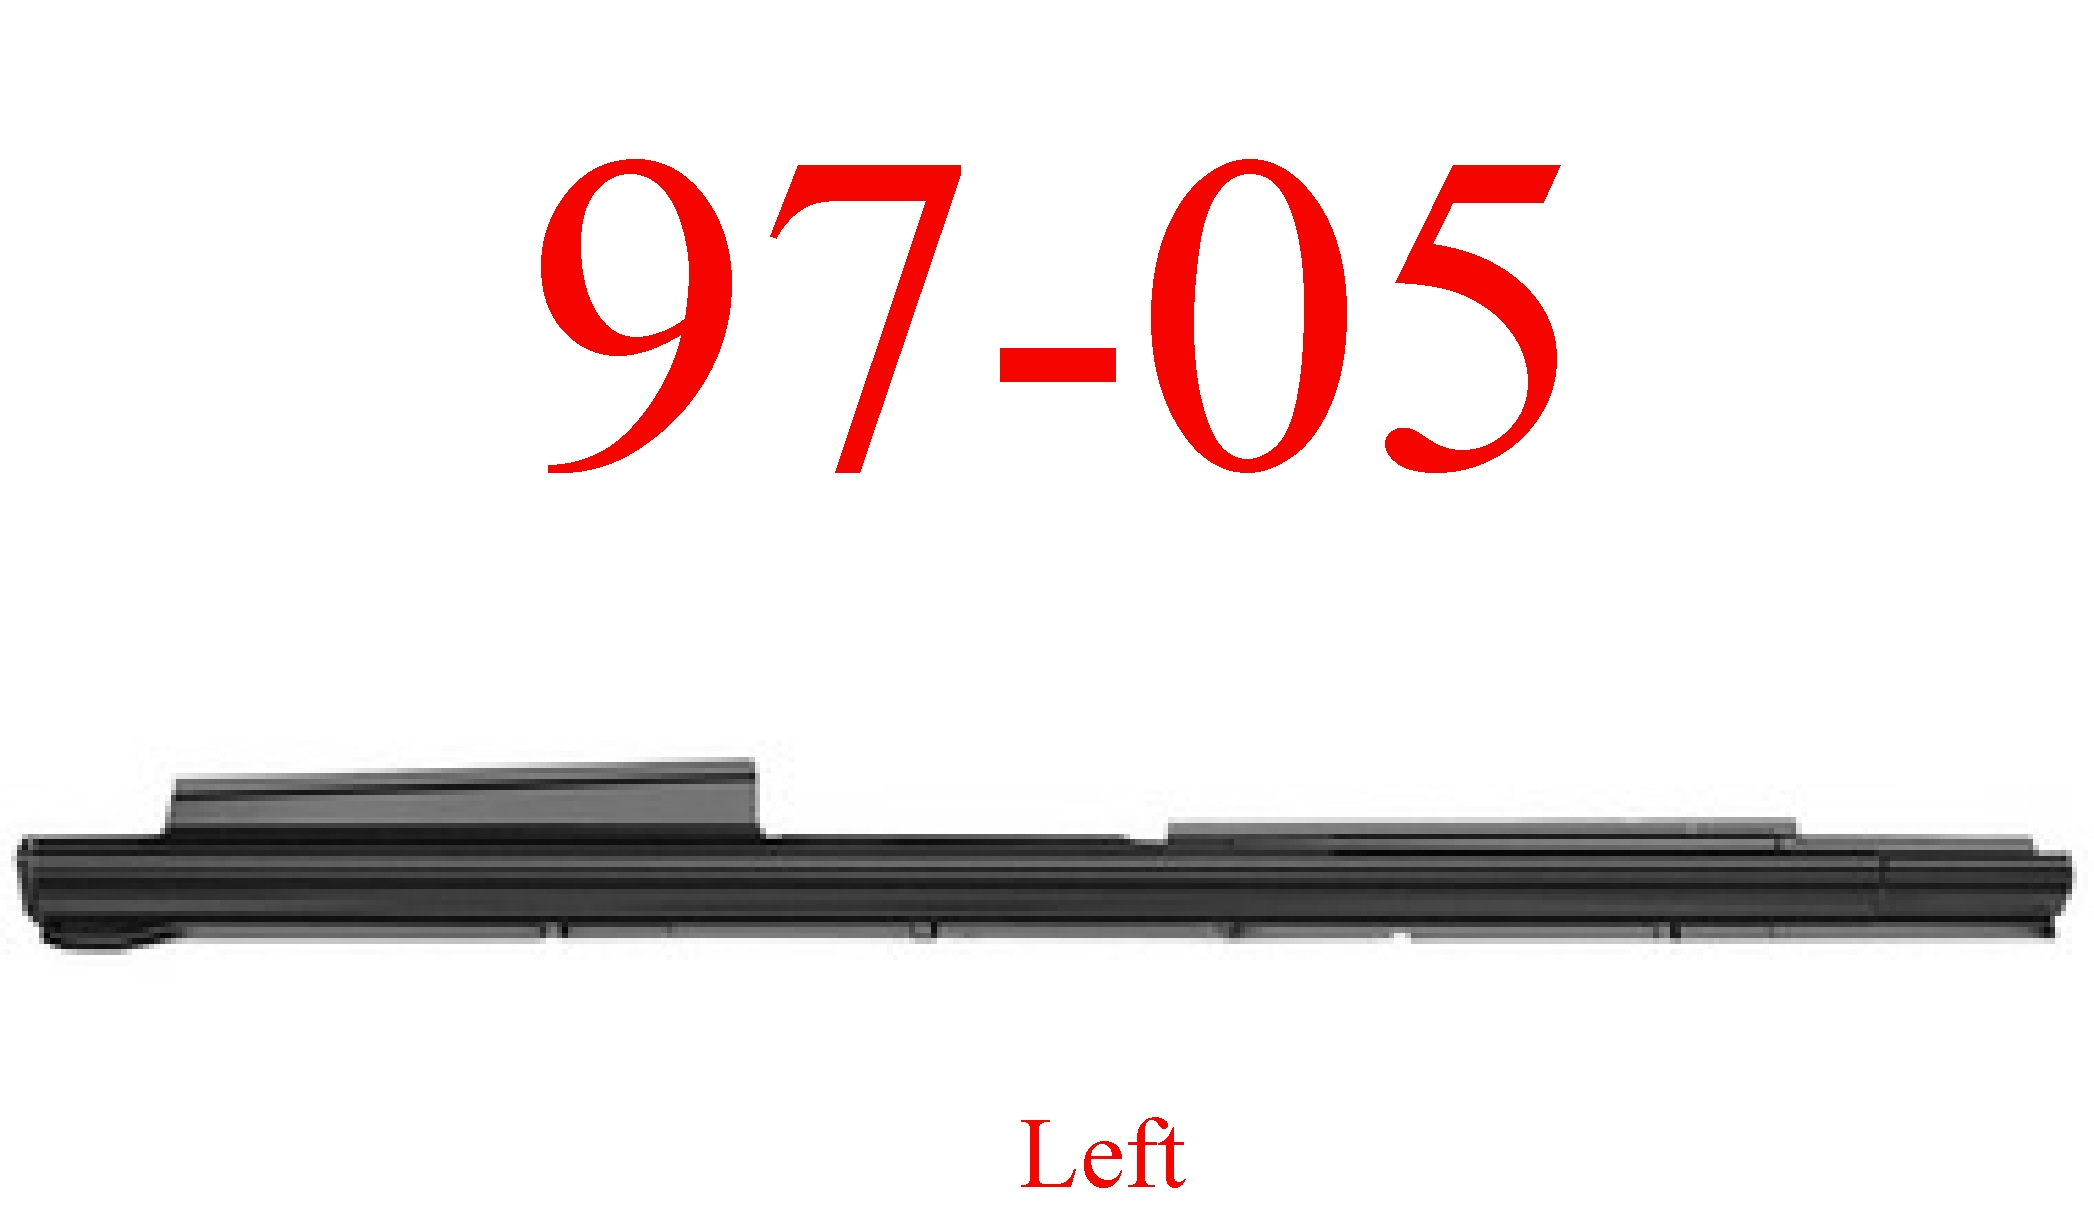 97 05 Chevy Venture Left Extended Rocker Panel